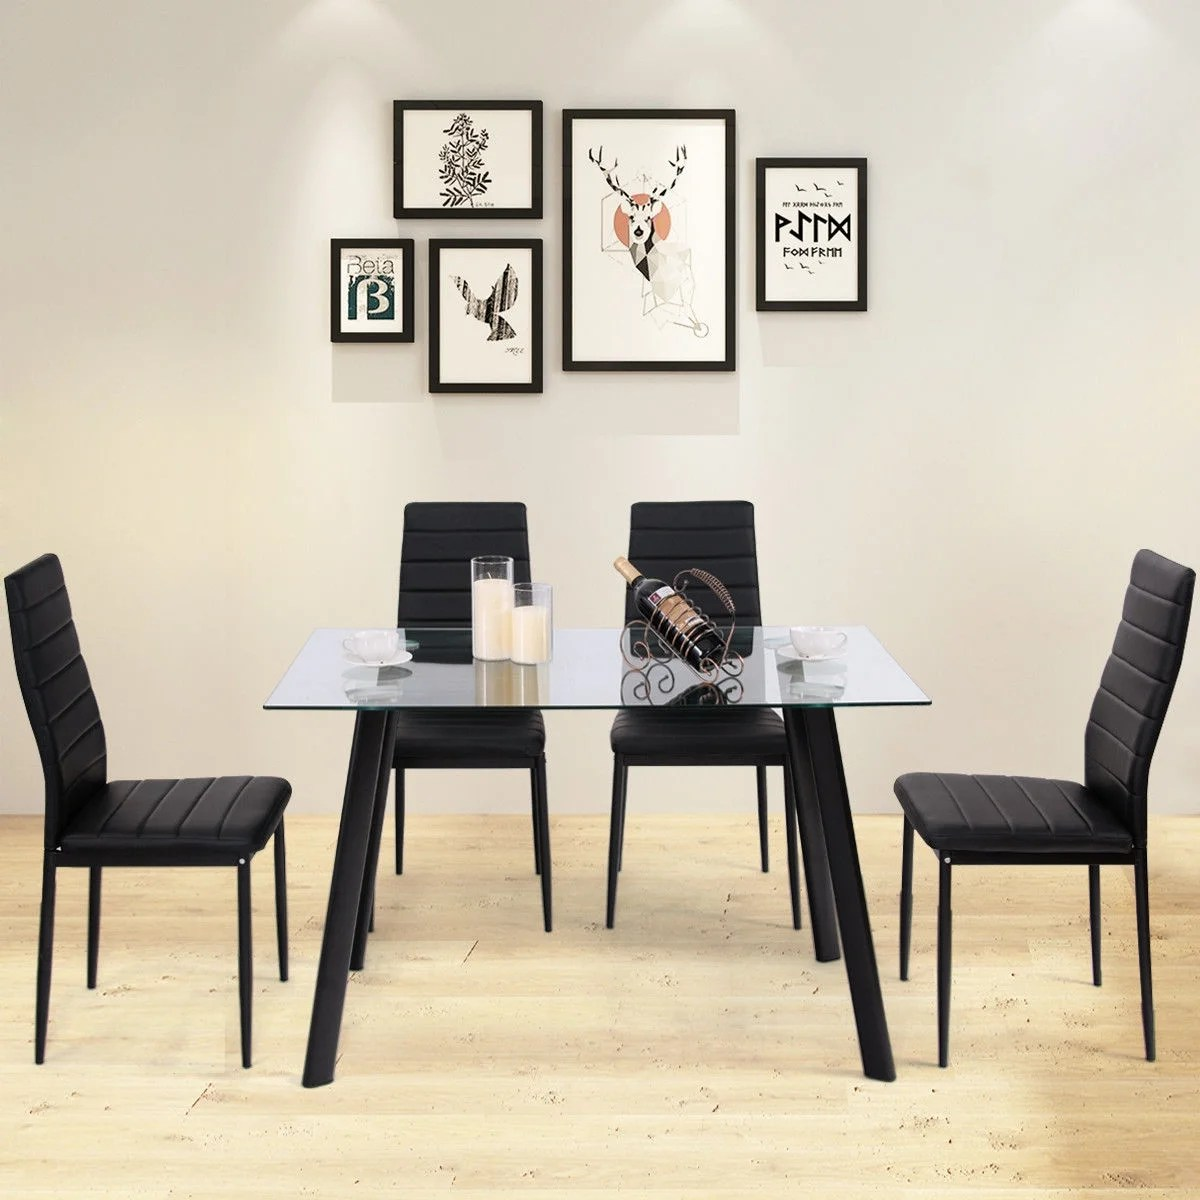 Glass Dining Table And Chairs Costway Modern Glass Dining Table Set Tempered Glass Top Pvc Leather Chair W 4 Chairs Black